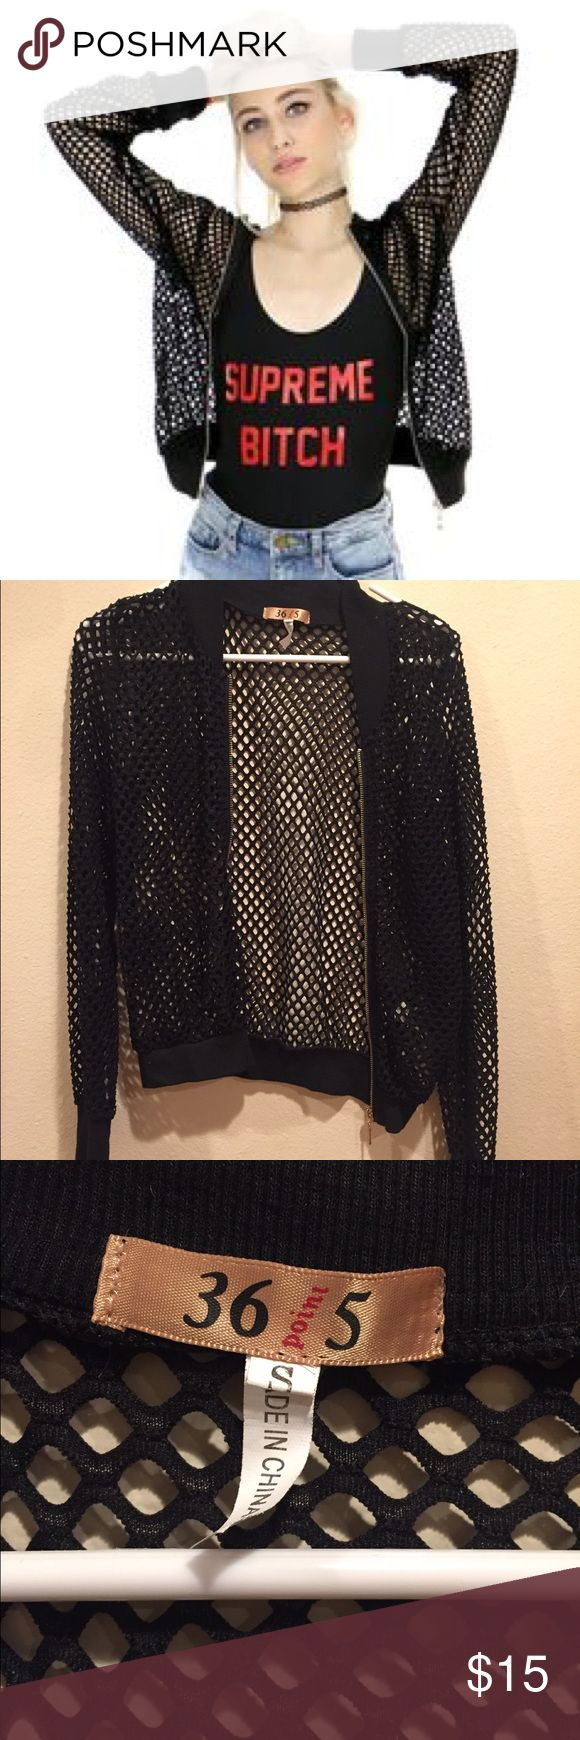 Shop Jeen Black Mesh Bomber Jacket Small NEW SHOP JEEN! ✨ Women's black mesh bomber jacket with fitted wrists and zip up enclosure. Size small  Never worn before, brand new!!! Shop Jeen Jackets & Coats